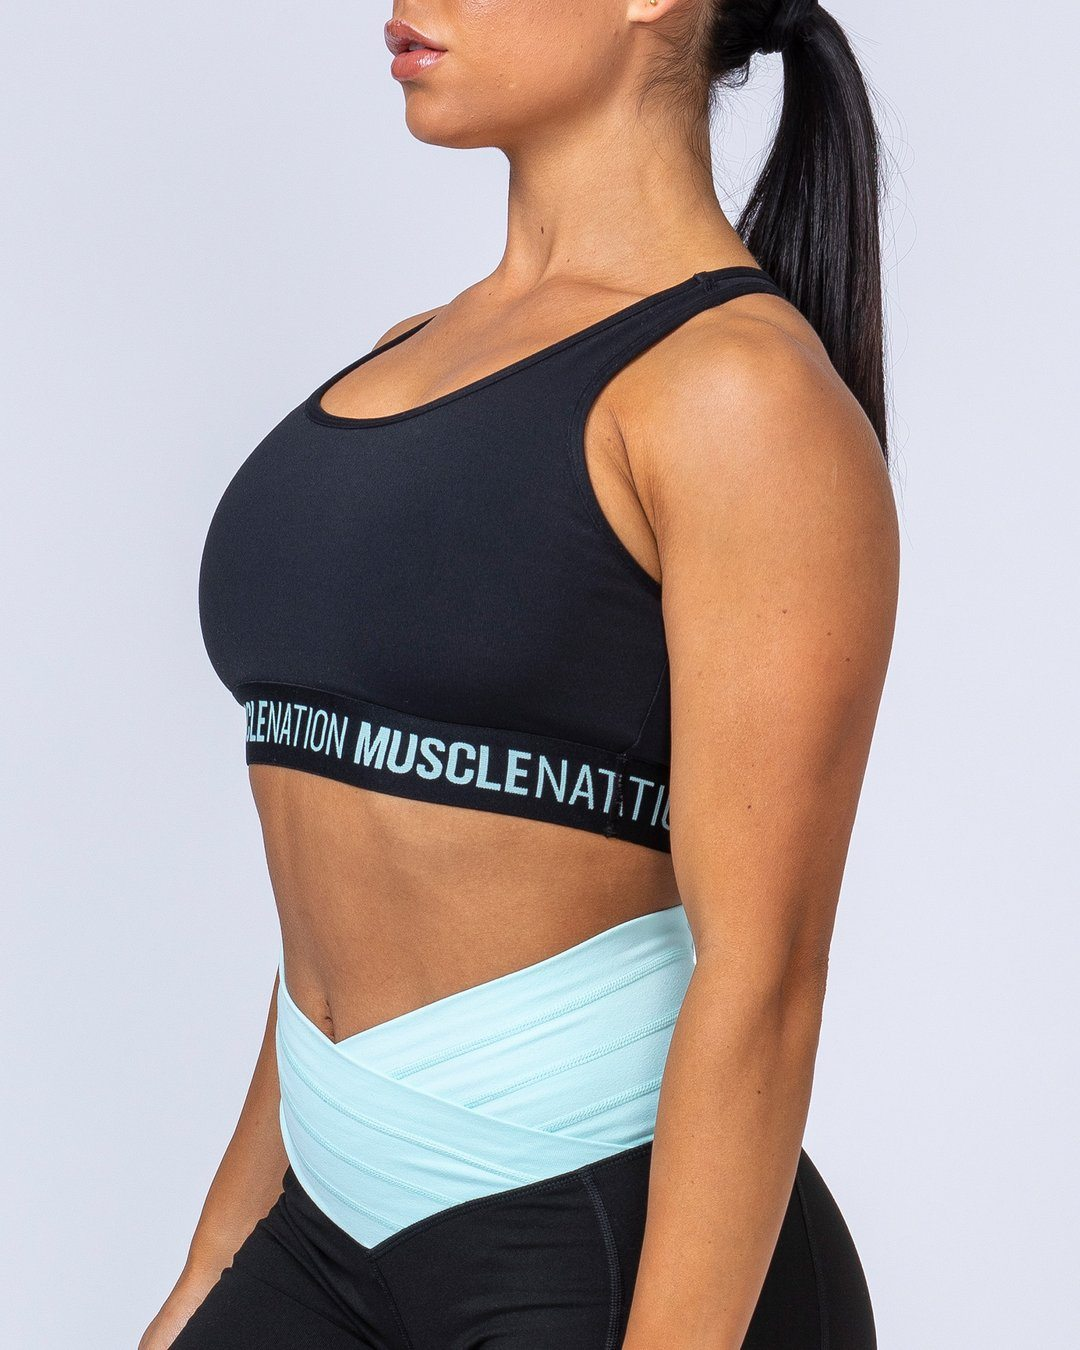 Muscle Nation Knockout Bra - Black/Sky Blue